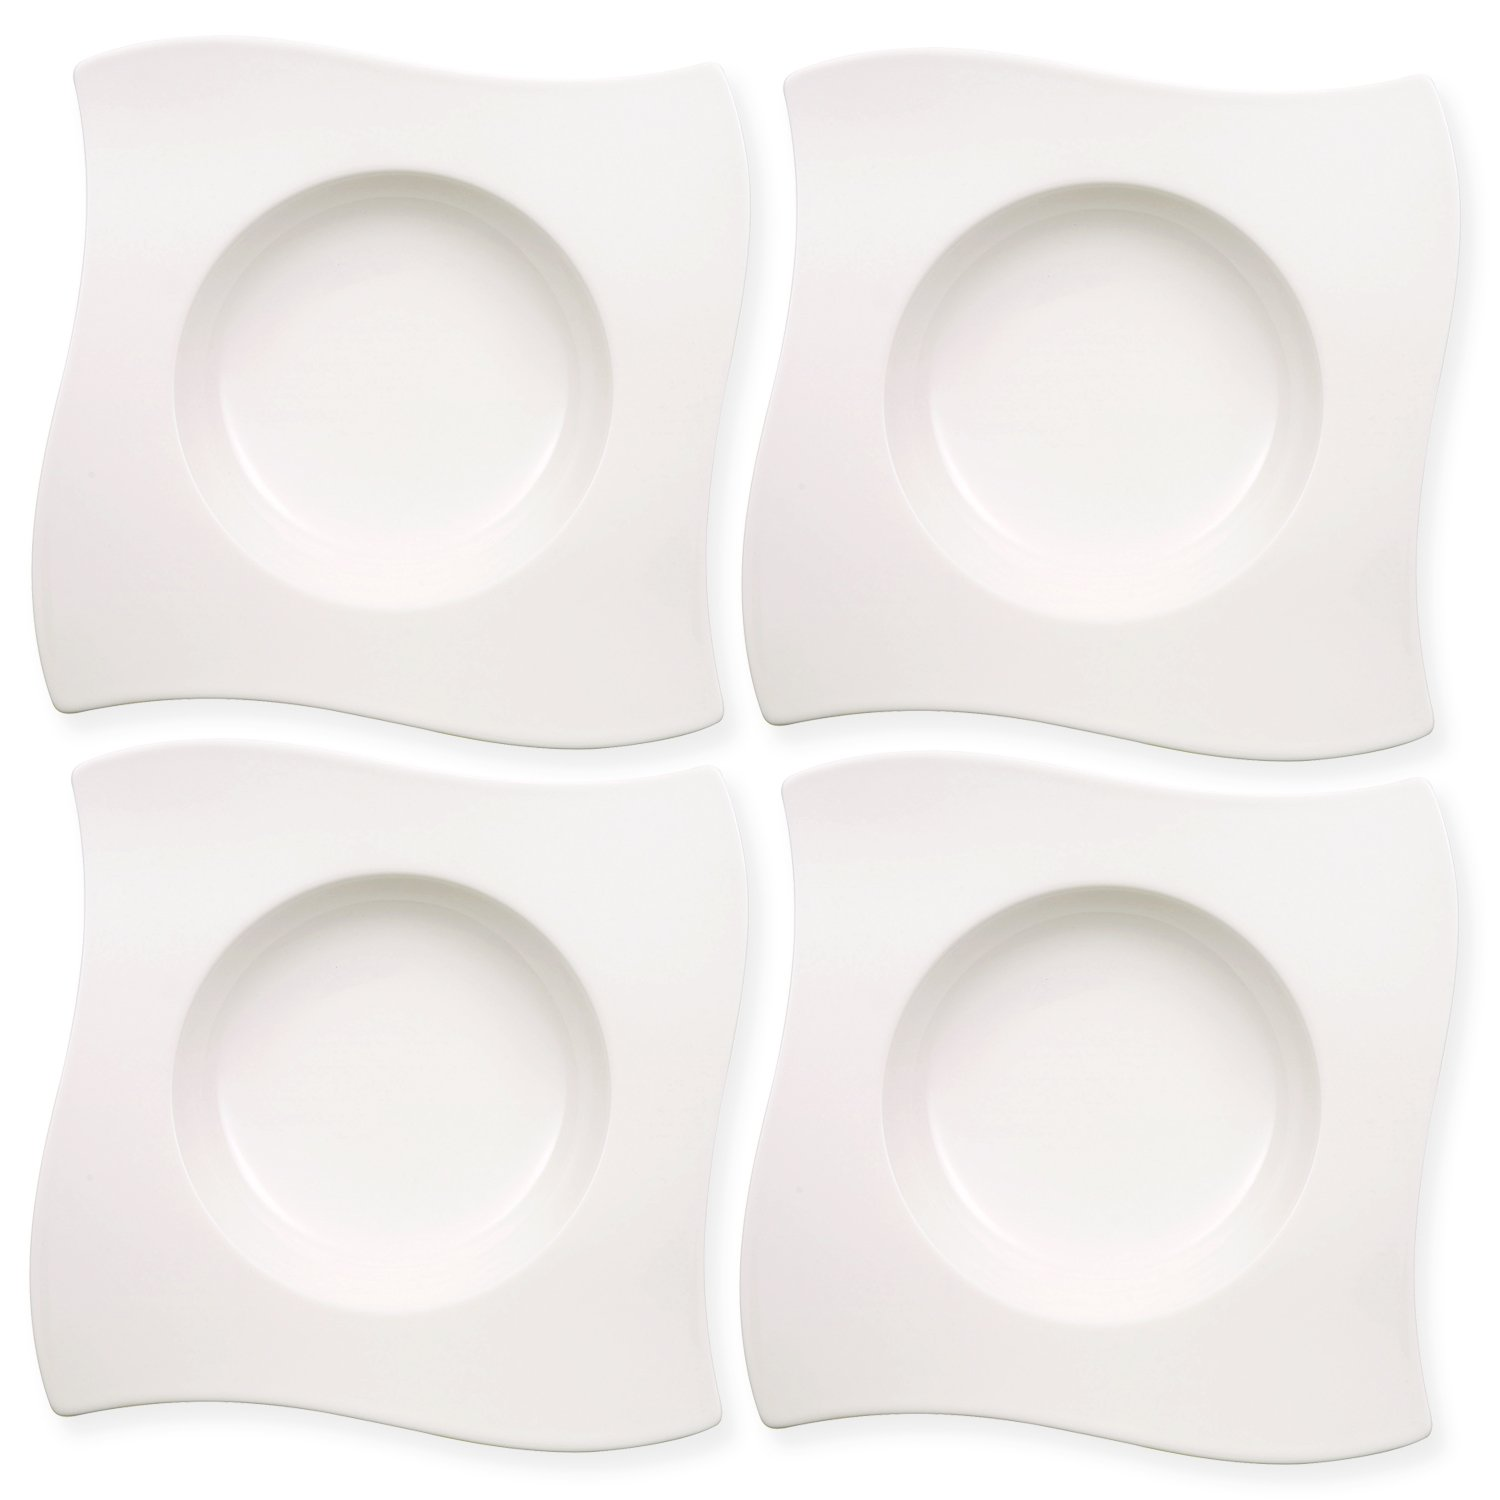 New Wave Soup Bowl Set of 4 by Villeroy & Boch - Premium Porcelain - Made in Germany - Dishwasher and Microwave Safe - 9.25 - Serves 4 by Villeroy & Boch (Image #2)